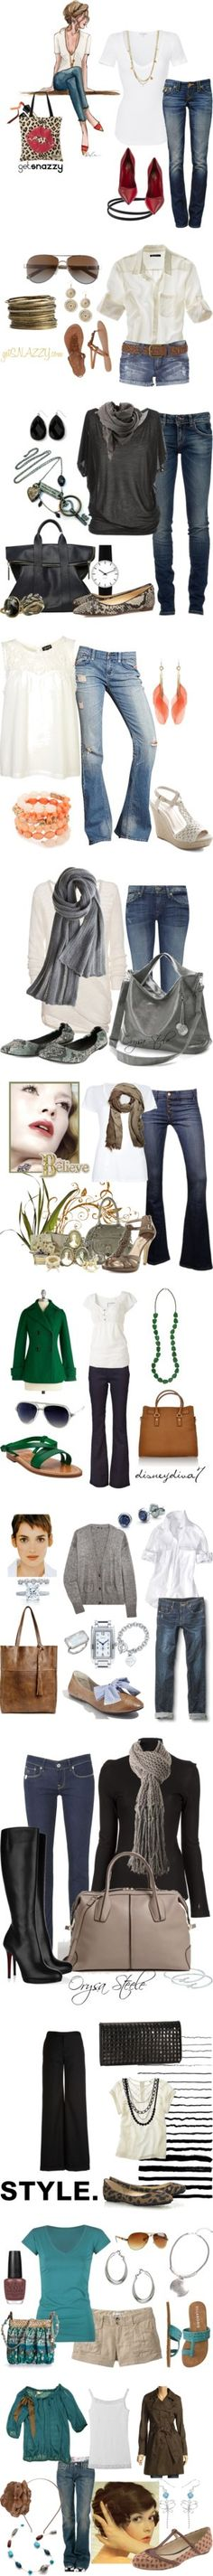 Outfits from Basics - Moms of Polyvore by getsnazzy on Polyvore featuring Sabine, Guerlain, Yosi Samra, Marc by Marc Jacobs, Dorothy Perkins, James Perse, Jane Norman, Tasha, True Religion and Gianvito Rossi